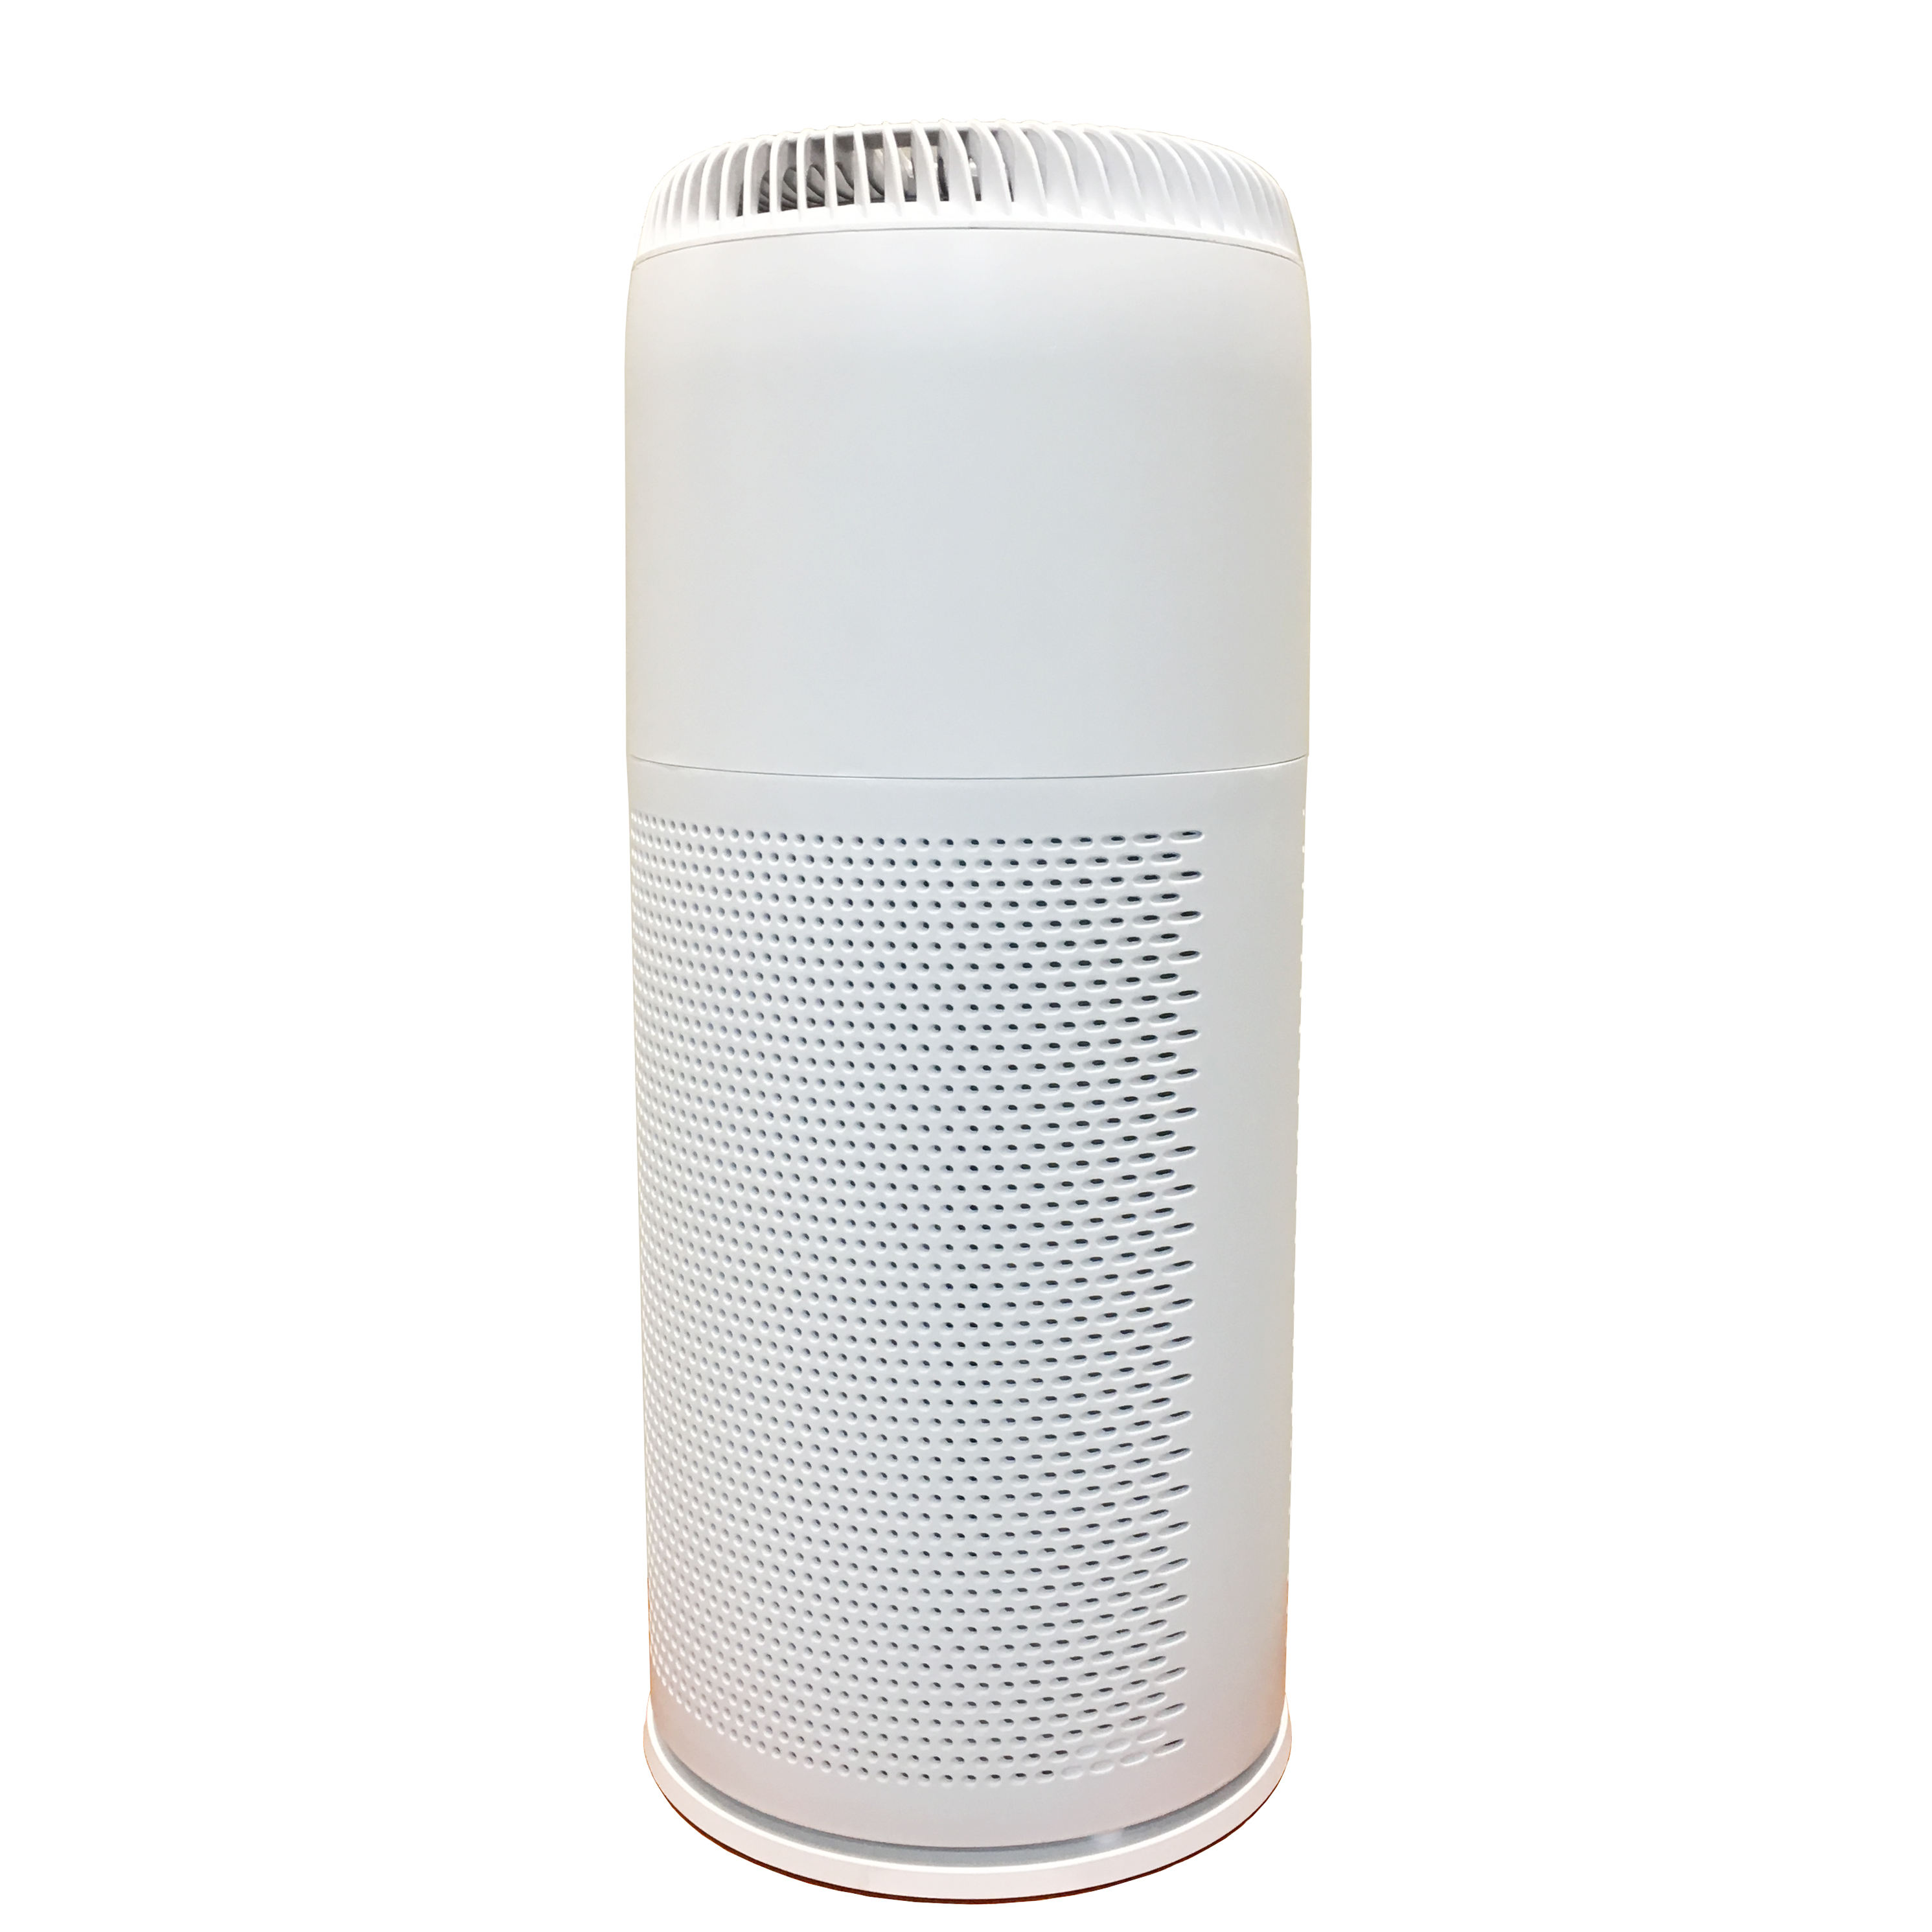 Hot On Sale In Korea Tower Shape HEPA 13 UV Air Purifier For Home